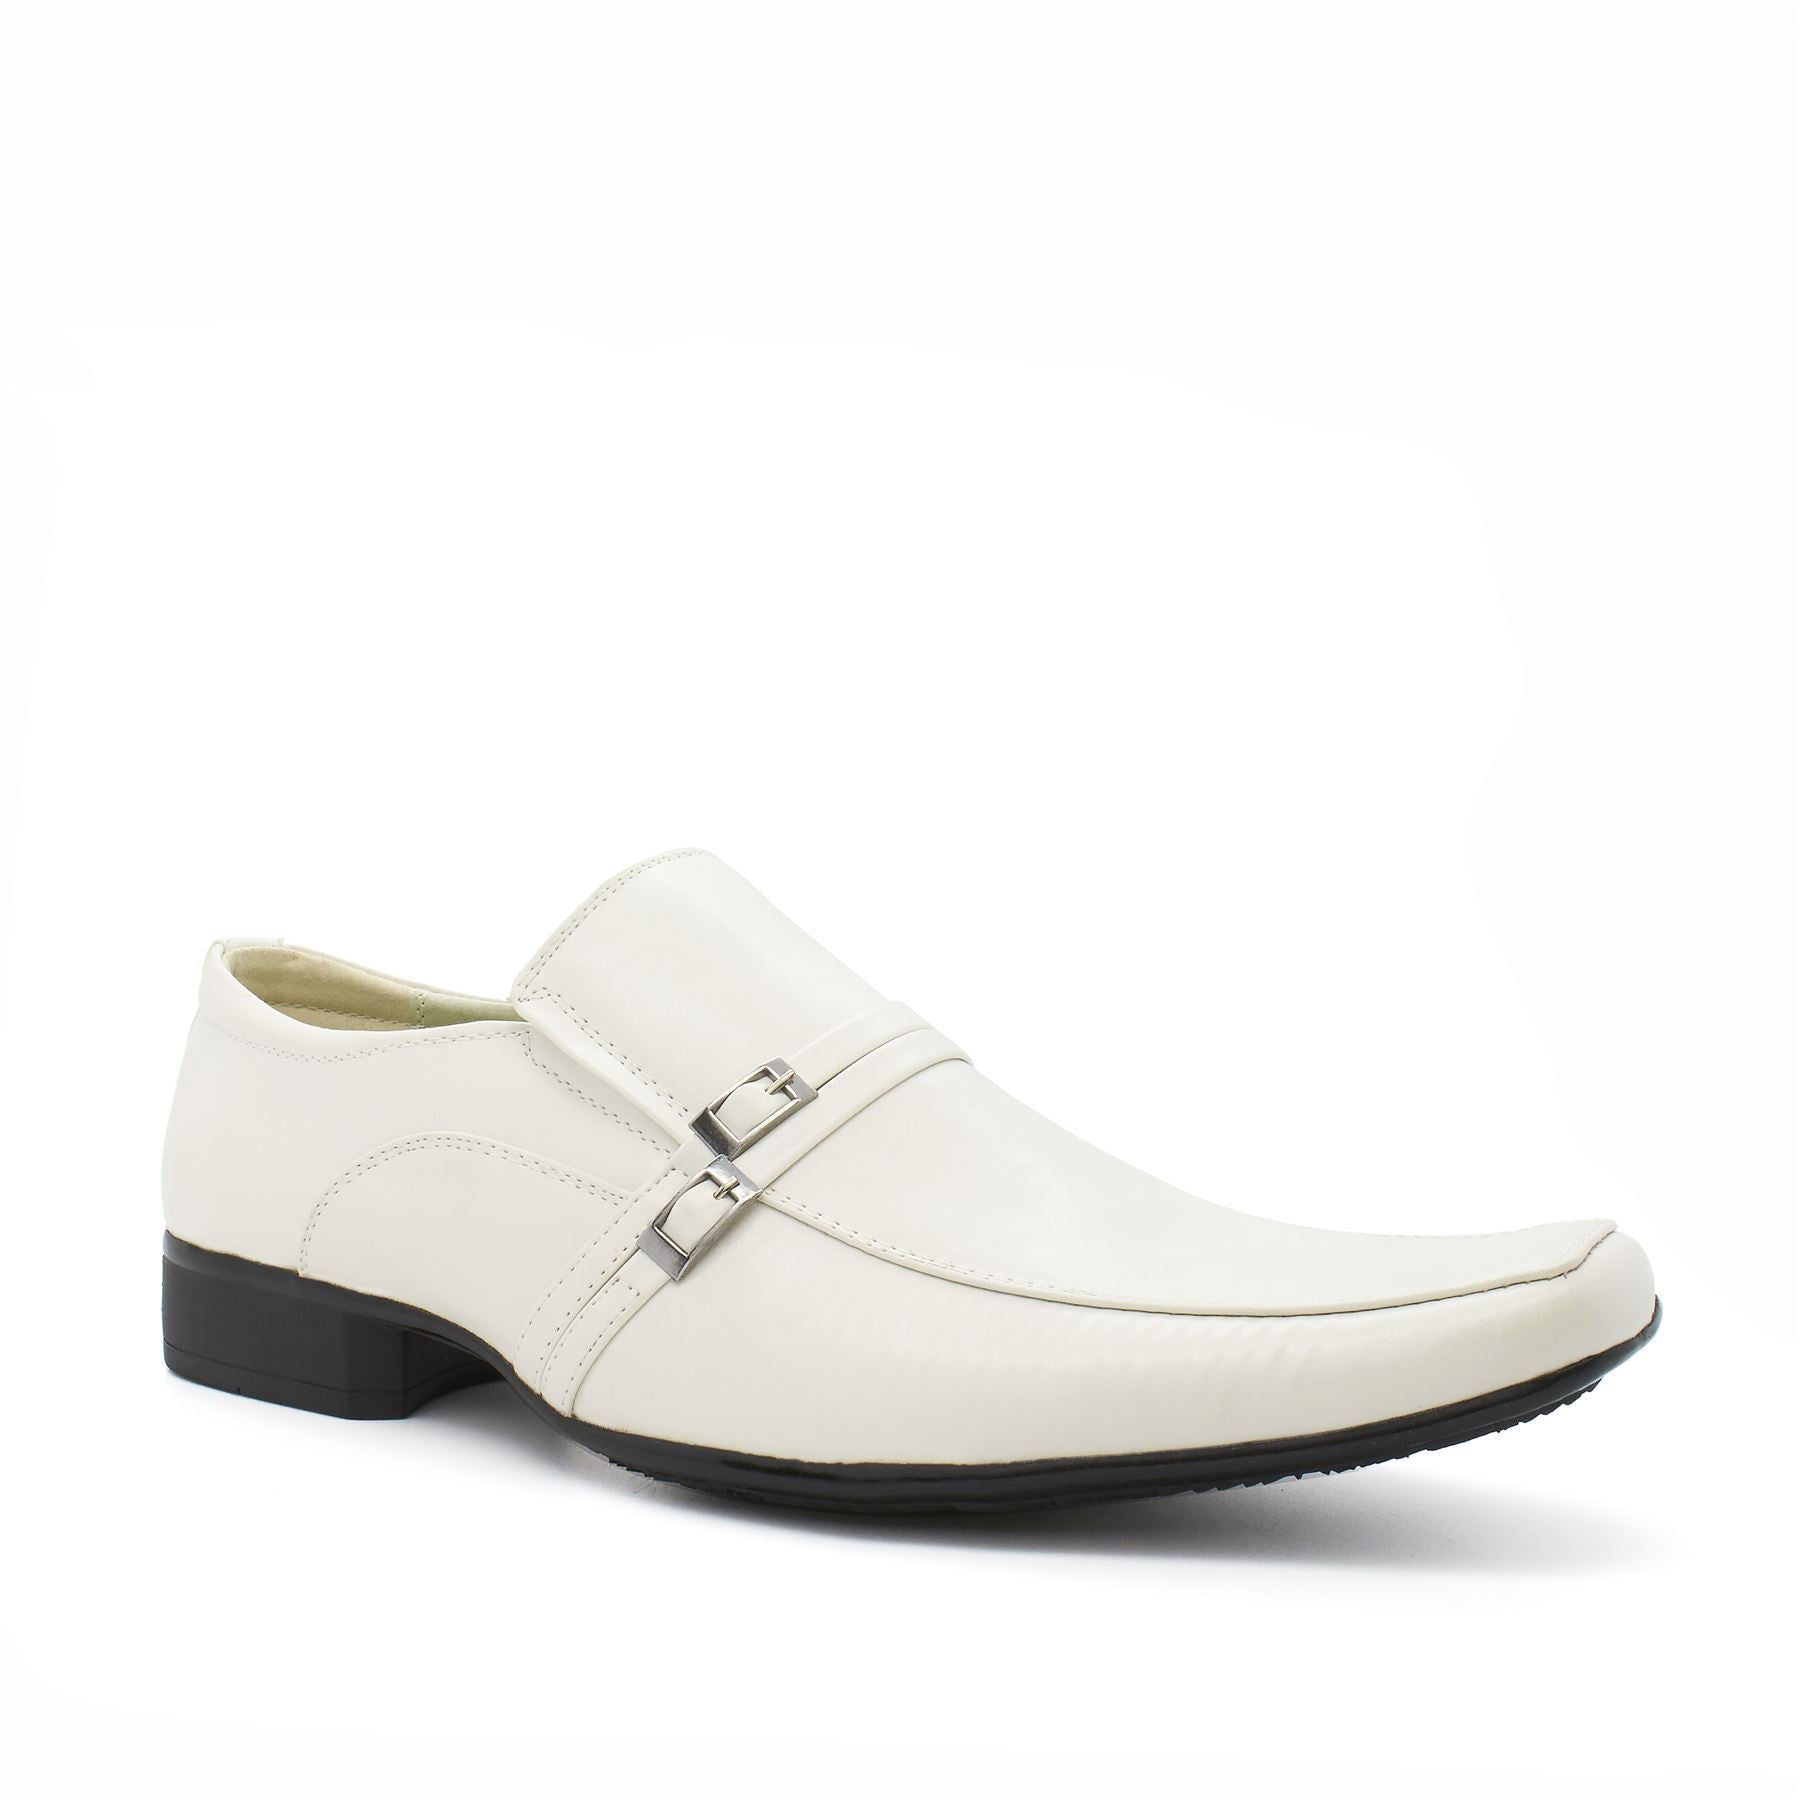 White Pin Buckle Detail Slip On